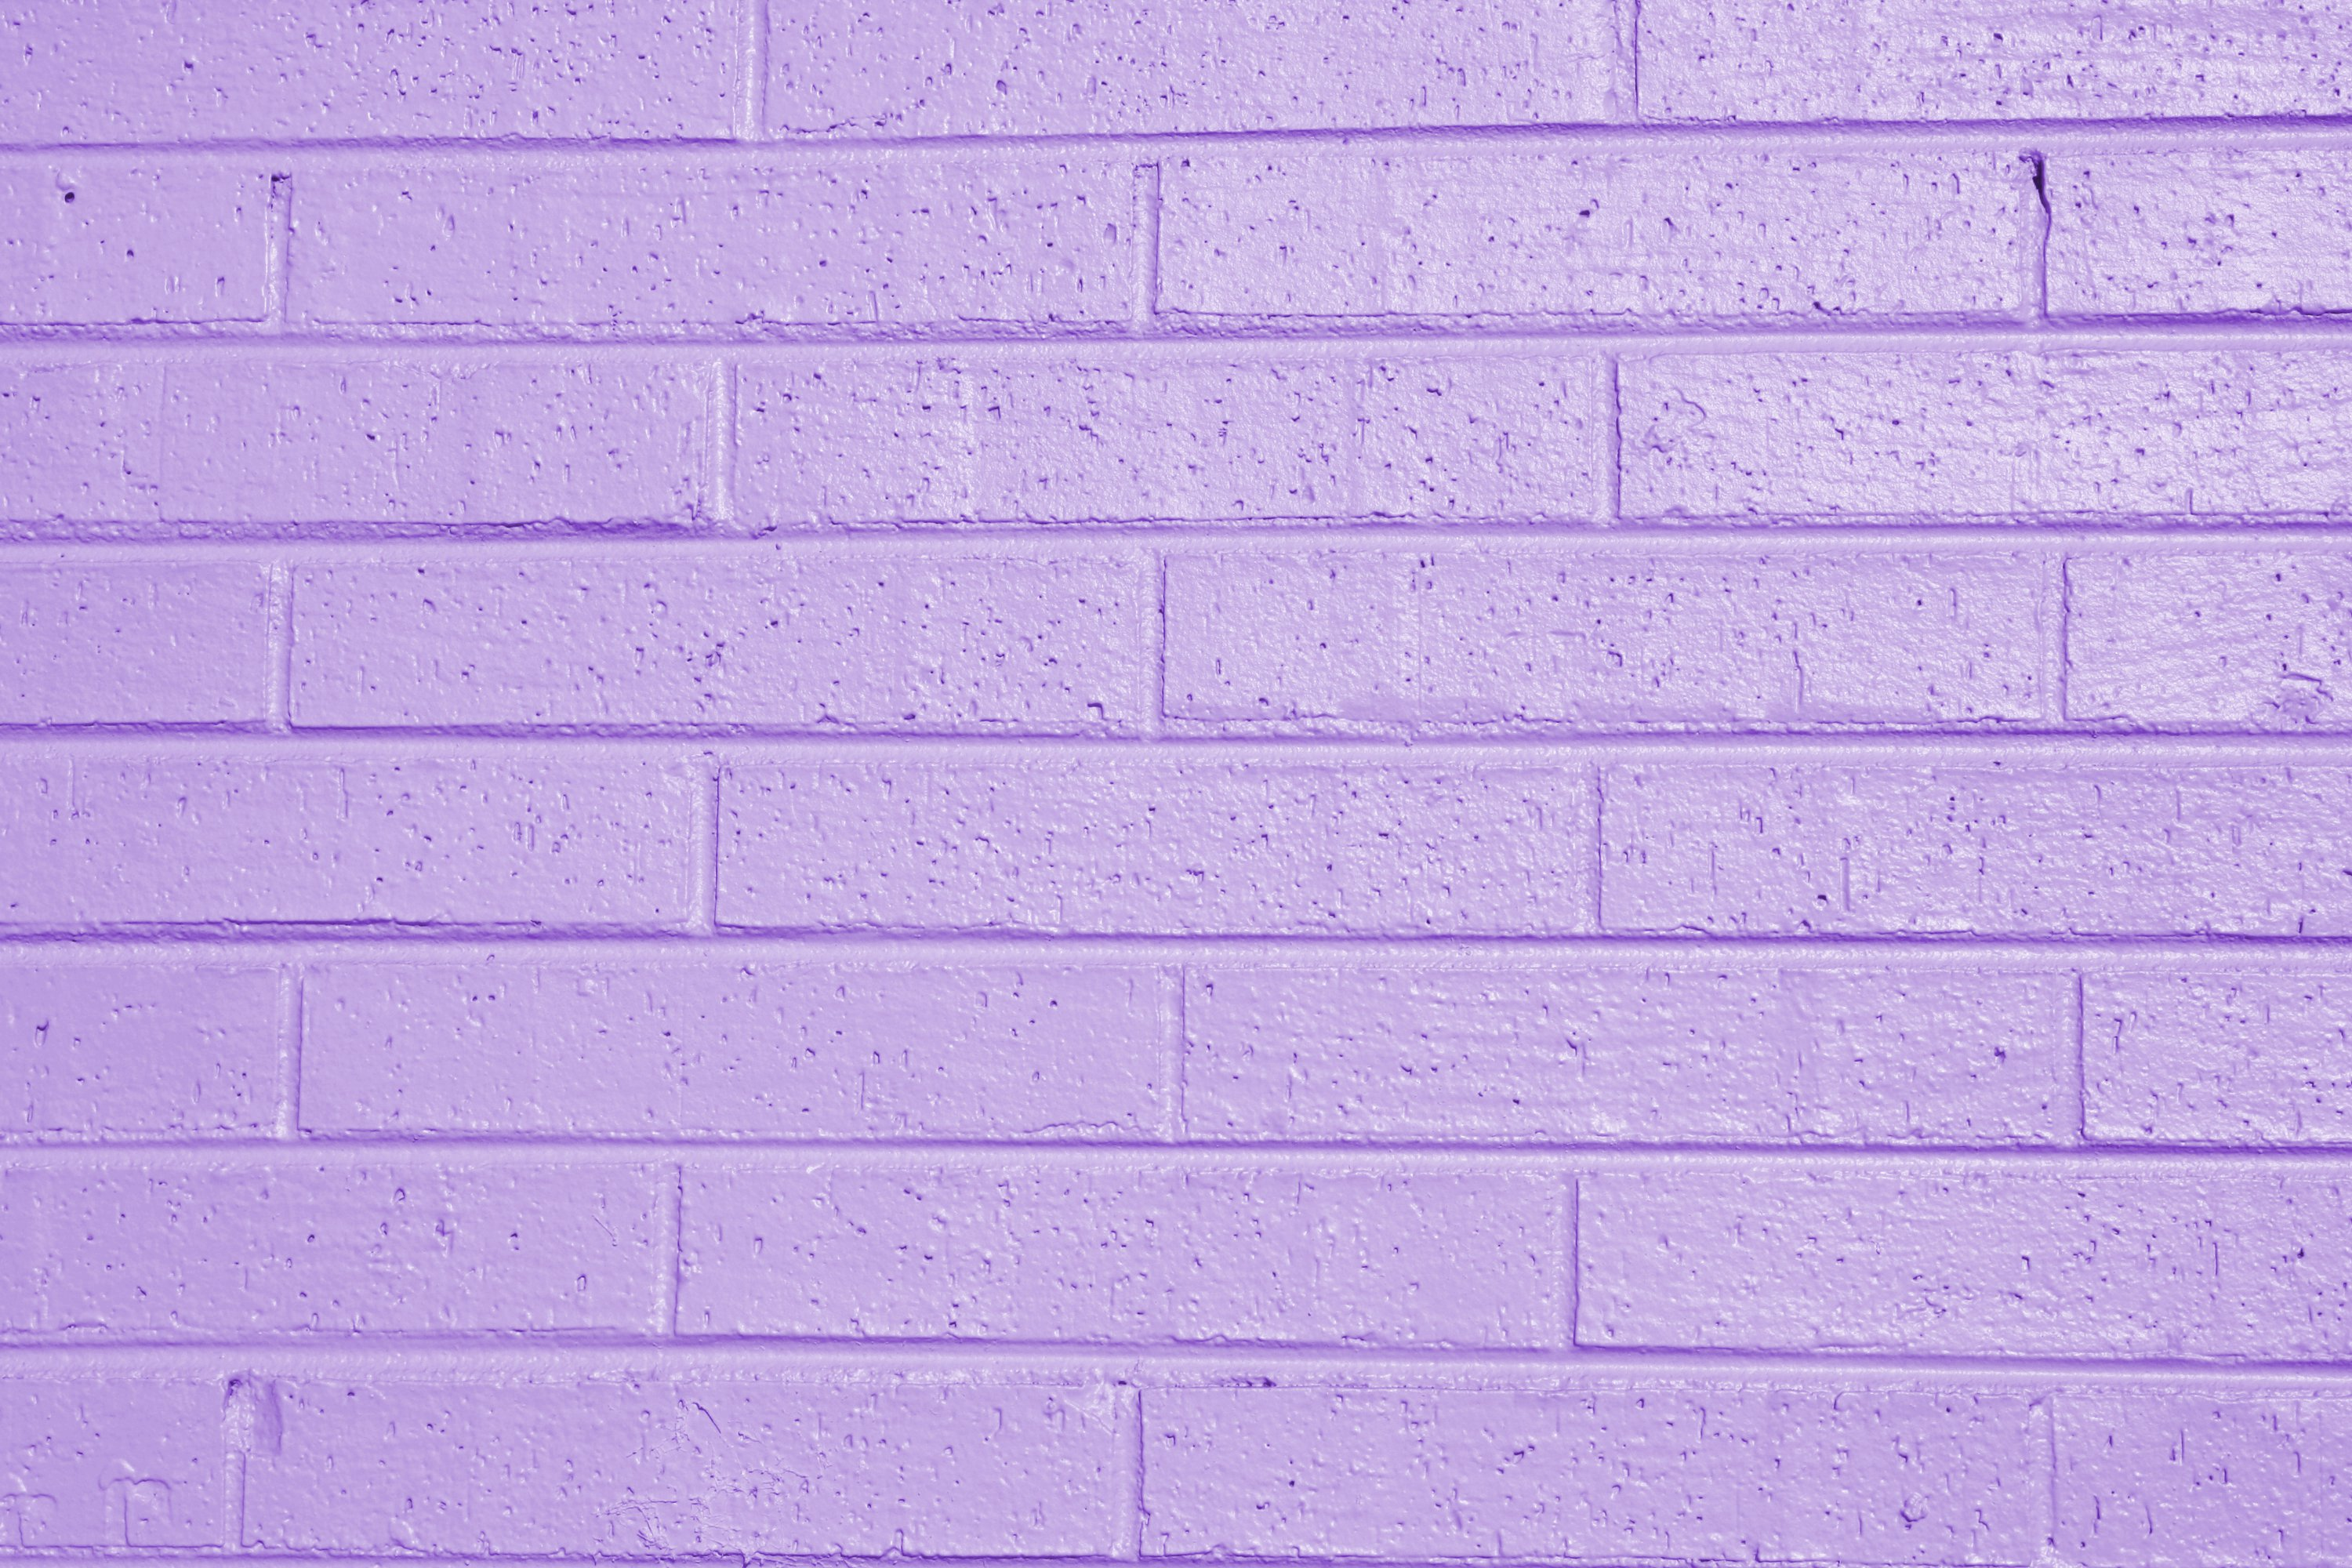 lilac or lavender painted brick wall texture picture